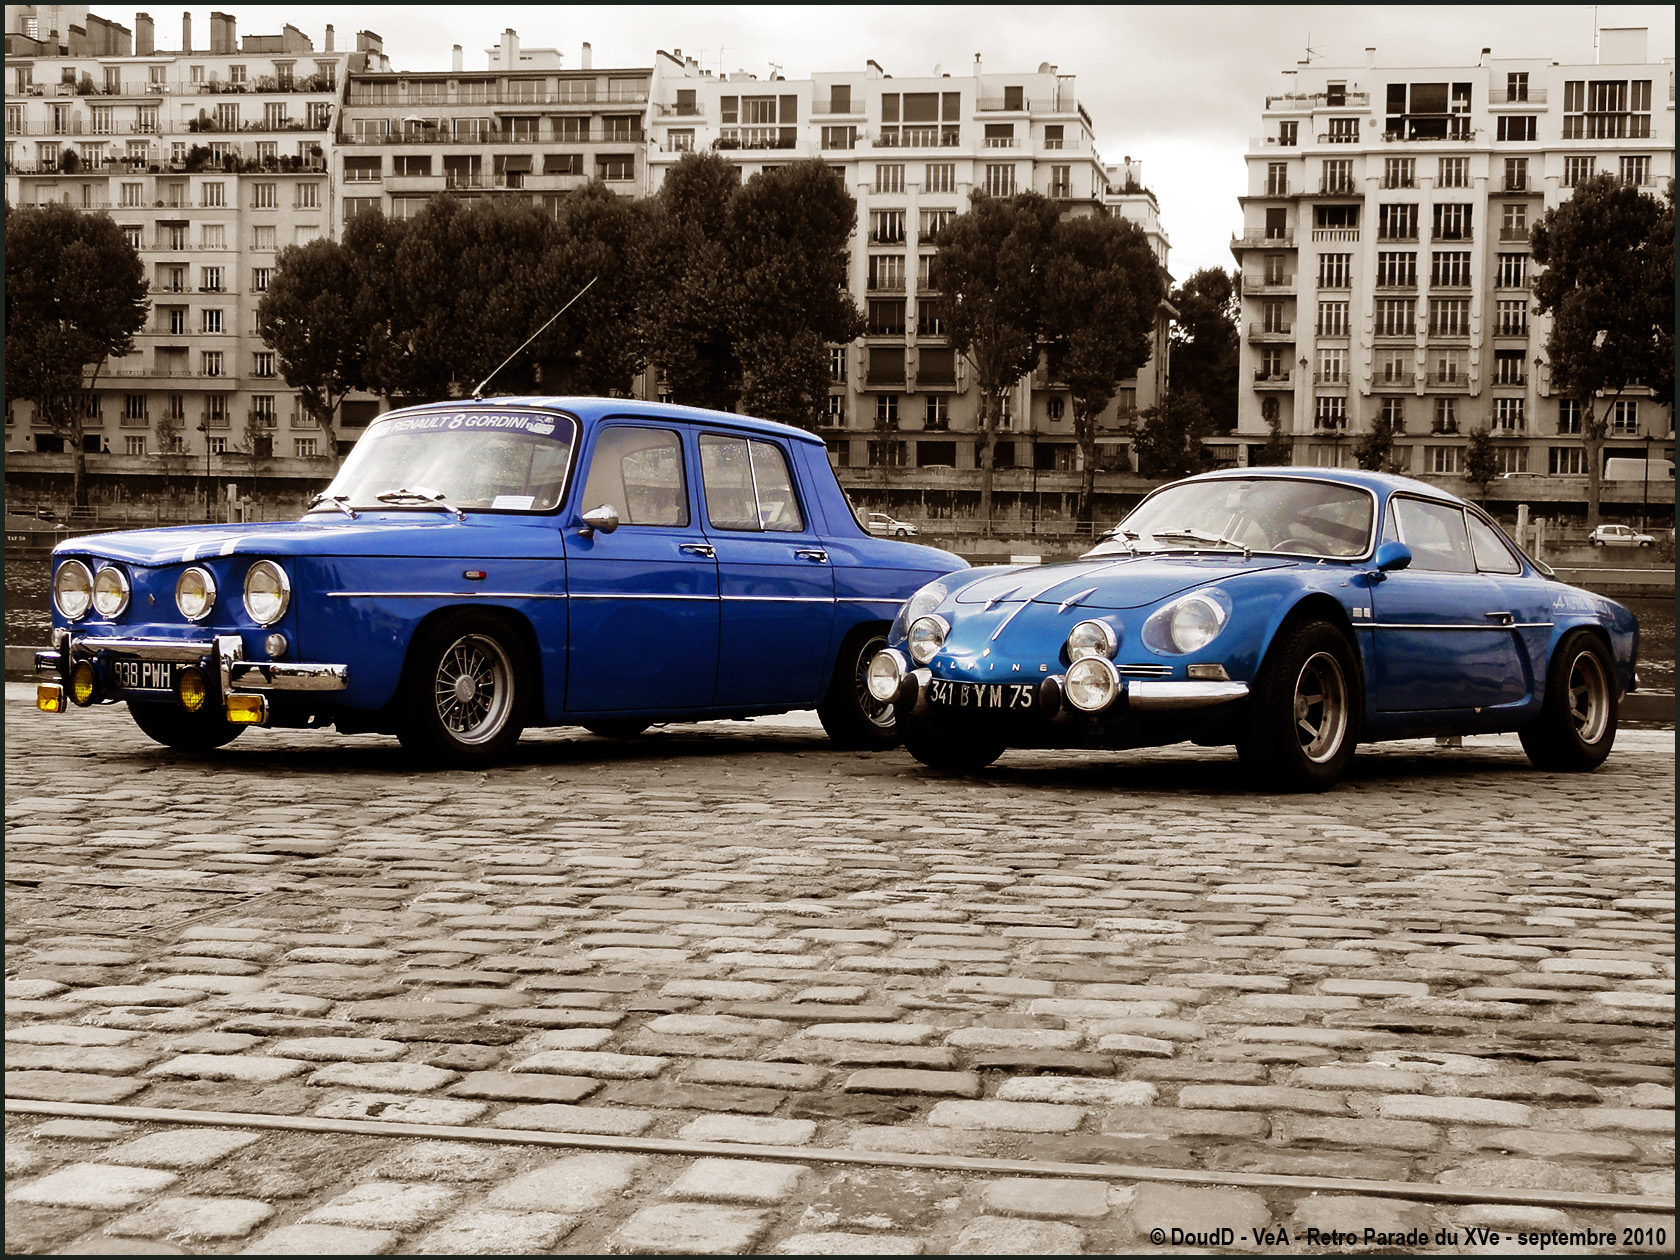 renault 8 gordini alpine a110 1600s coches clasicos de hoy. Black Bedroom Furniture Sets. Home Design Ideas